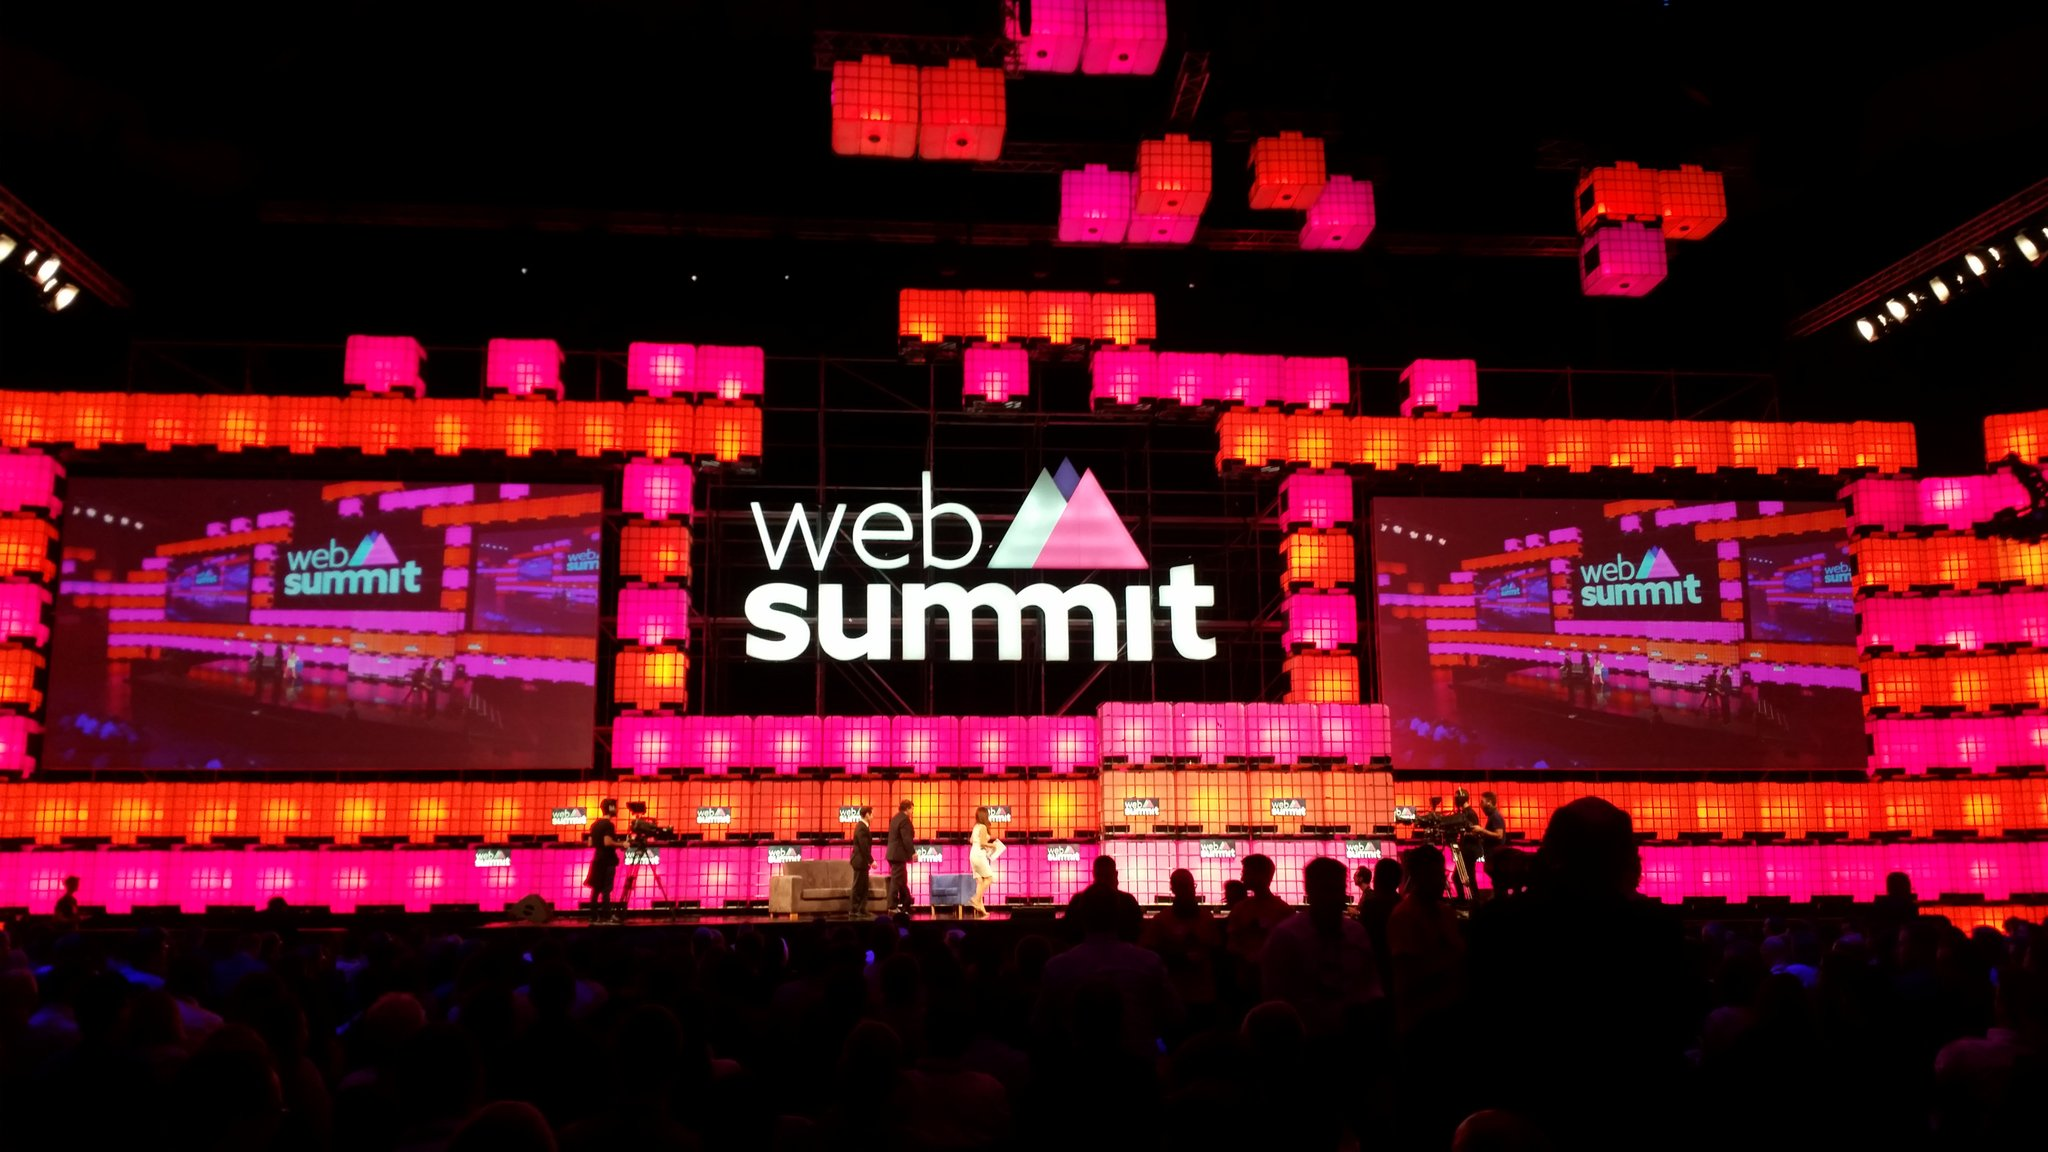 L'optimisme est au #websummit2016, on s'y voit ? #WebSummit #websummitlisbon https://t.co/WfnMvTQgKN